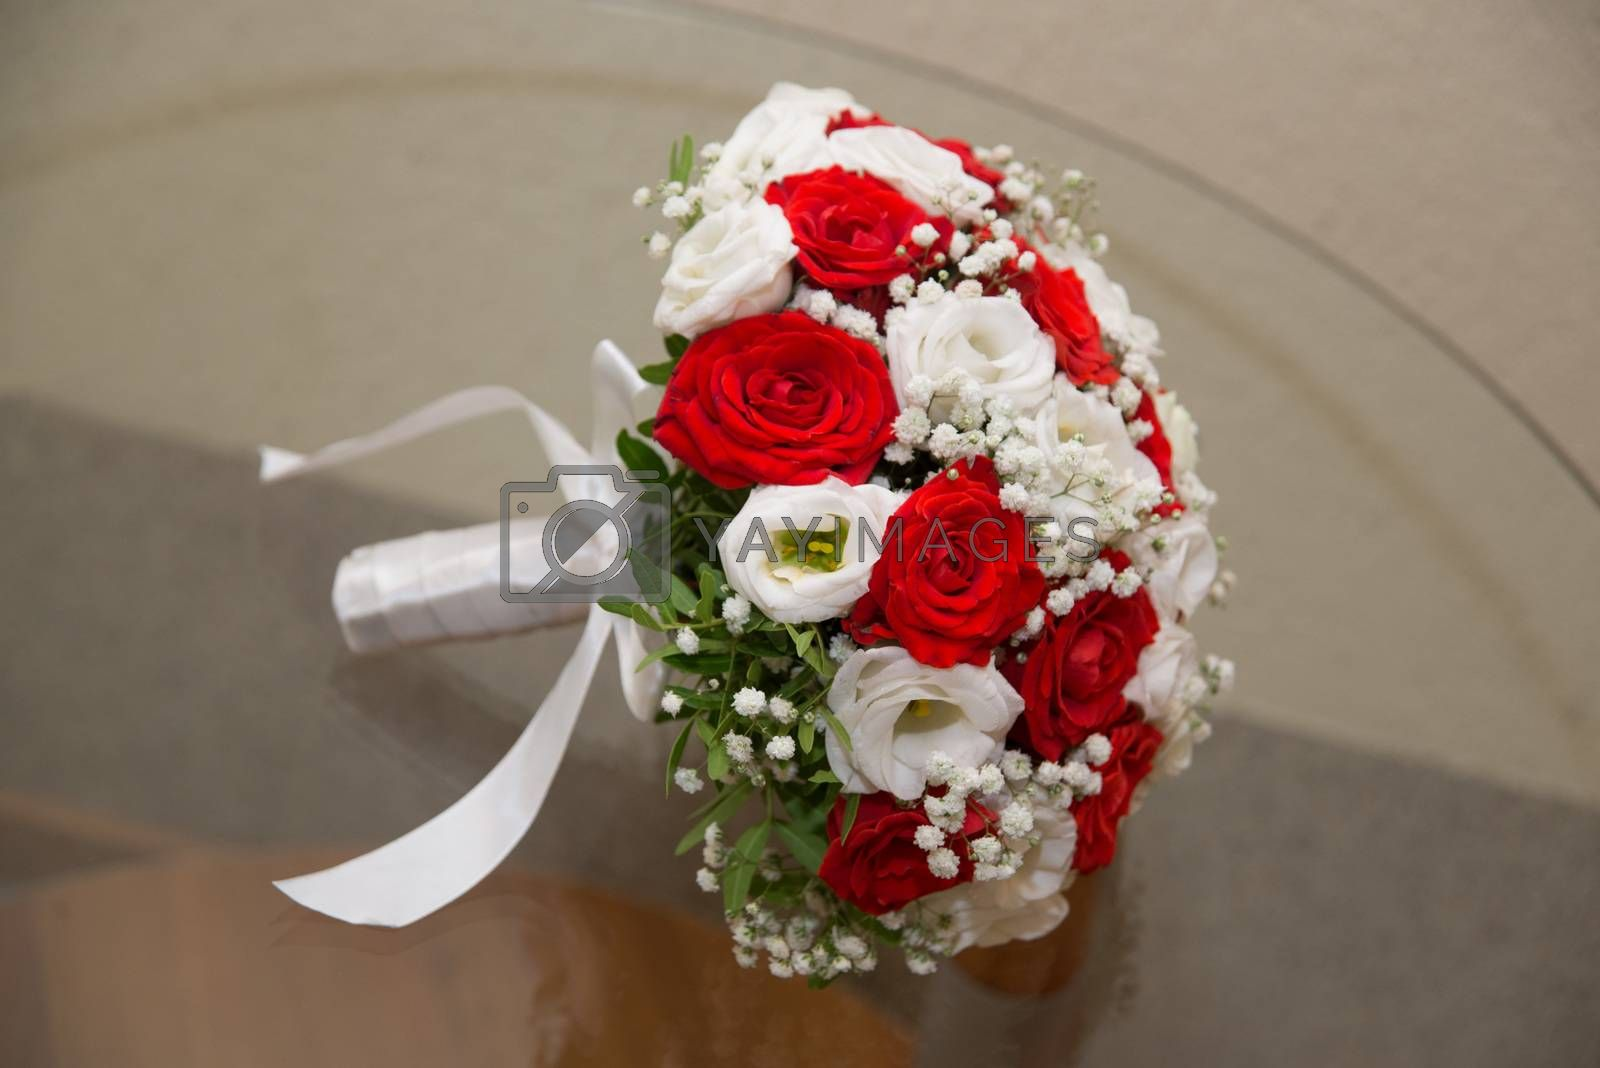 Beautiful wedding bouquet of red and white roses lying on the table.